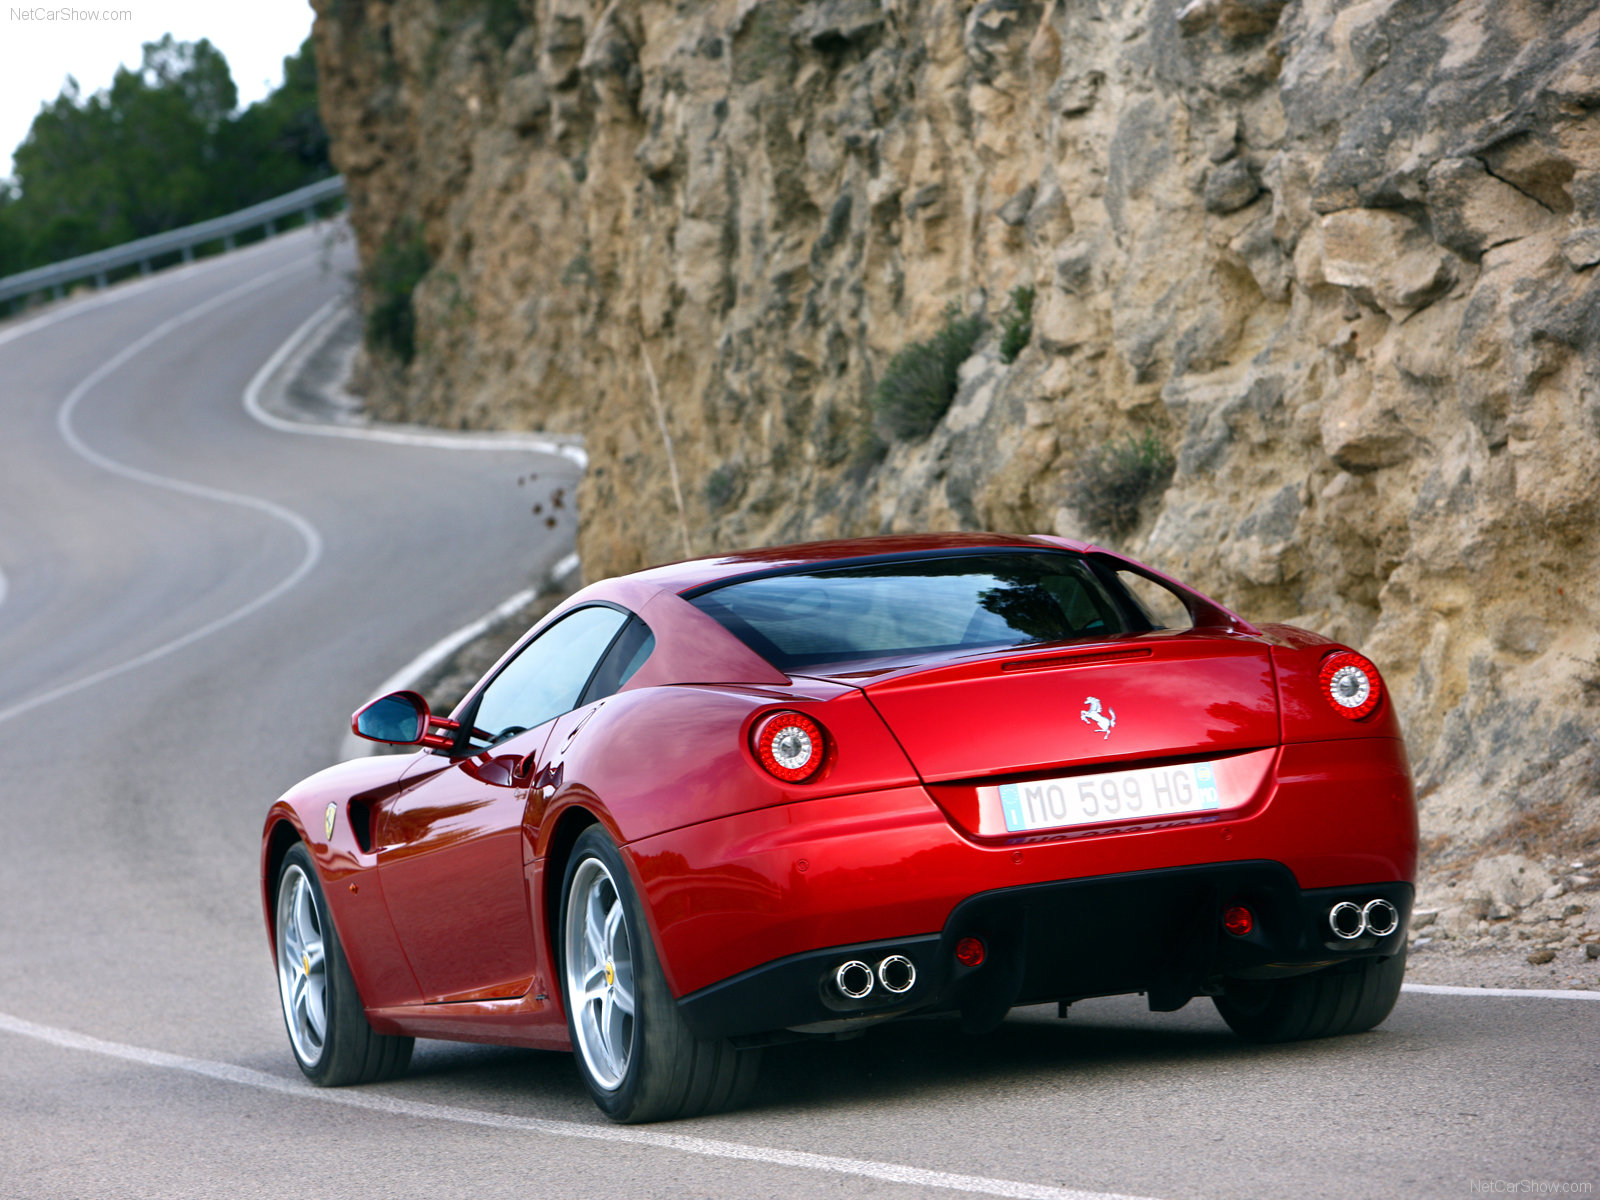 Ferrari 599 GTB Fiorano HGTE photo 65250